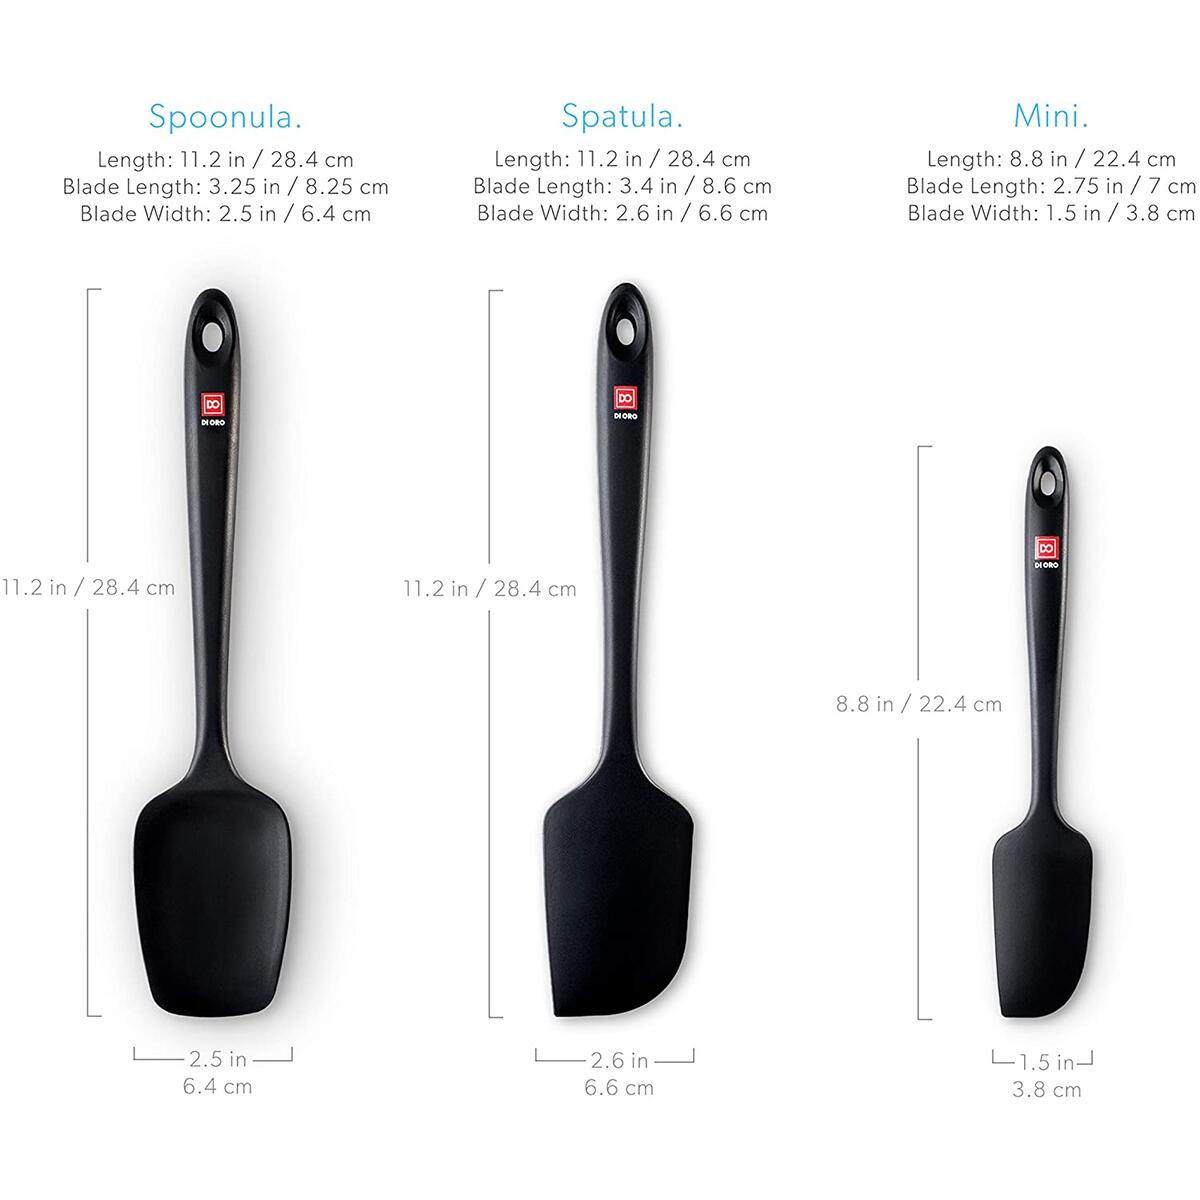 DI ORO Seamless Series 3-Piece Silicone Spatula Set - 600°F Heat Resistant Non Stick Rubber Kitchen Scraper Spatulas for Cooking, Baking, and Mixing (Black)